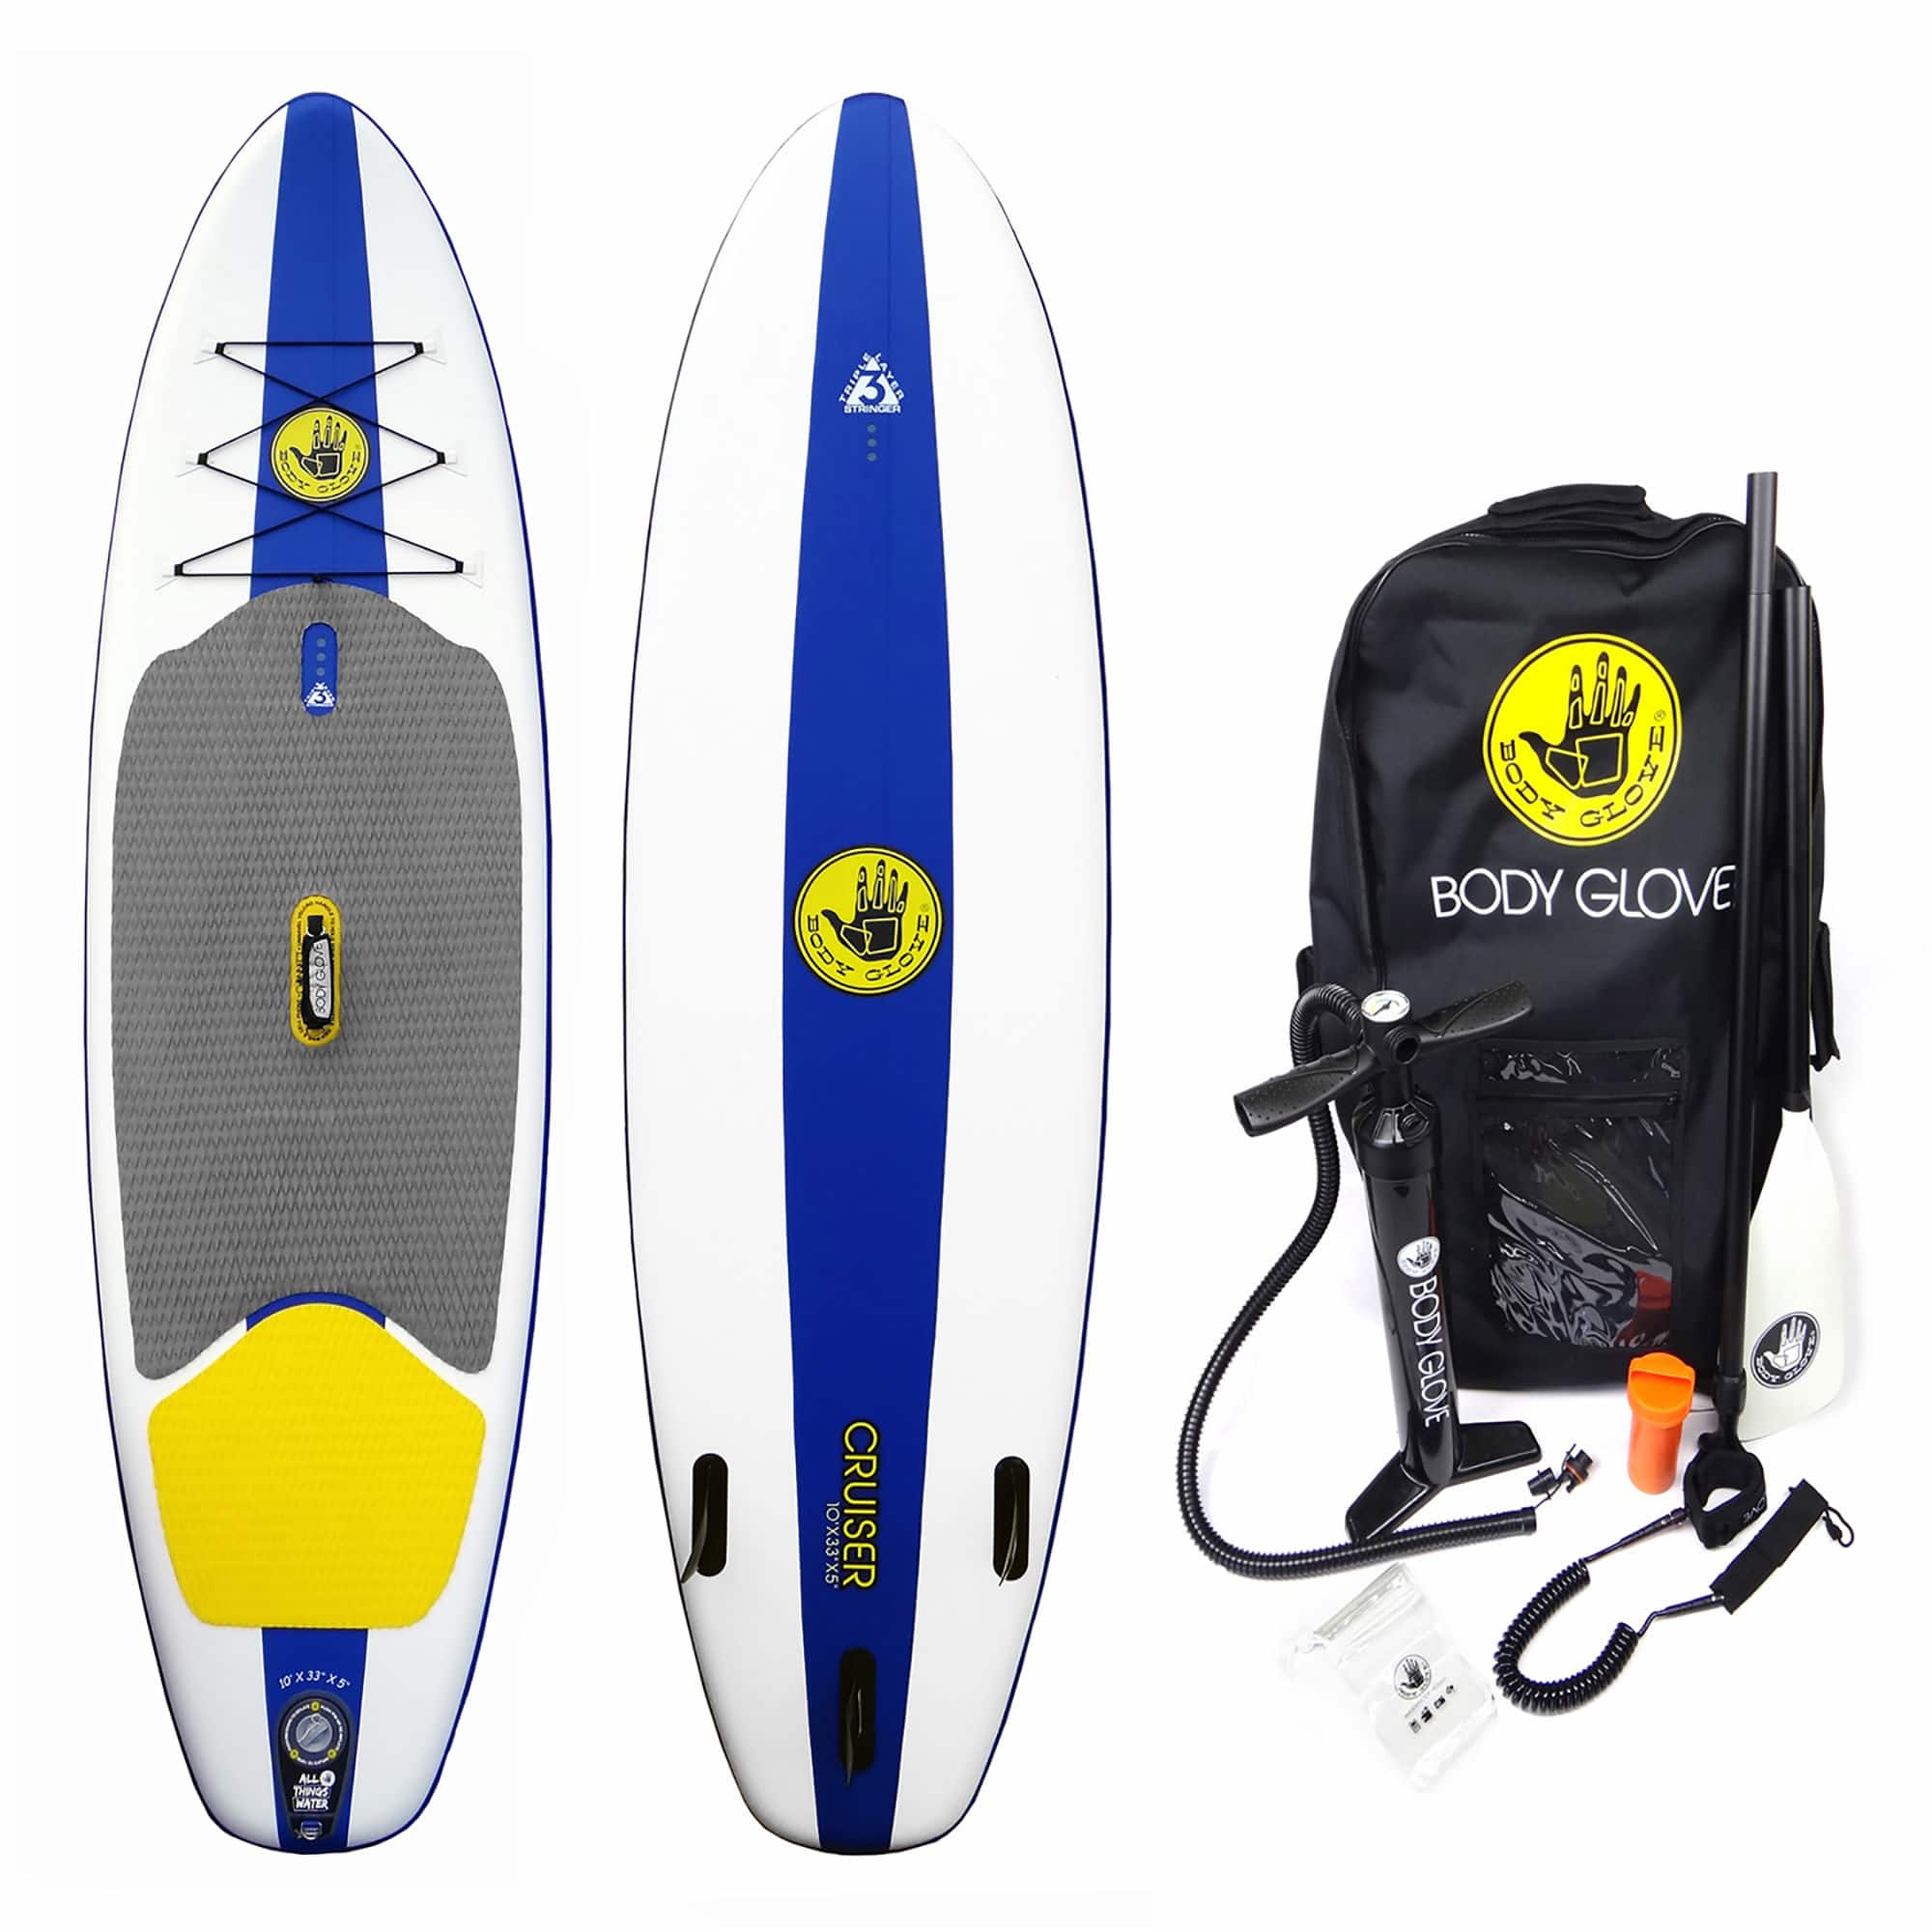 Body Glove Cruiser Inflatable Stand Up Paddleboard 399